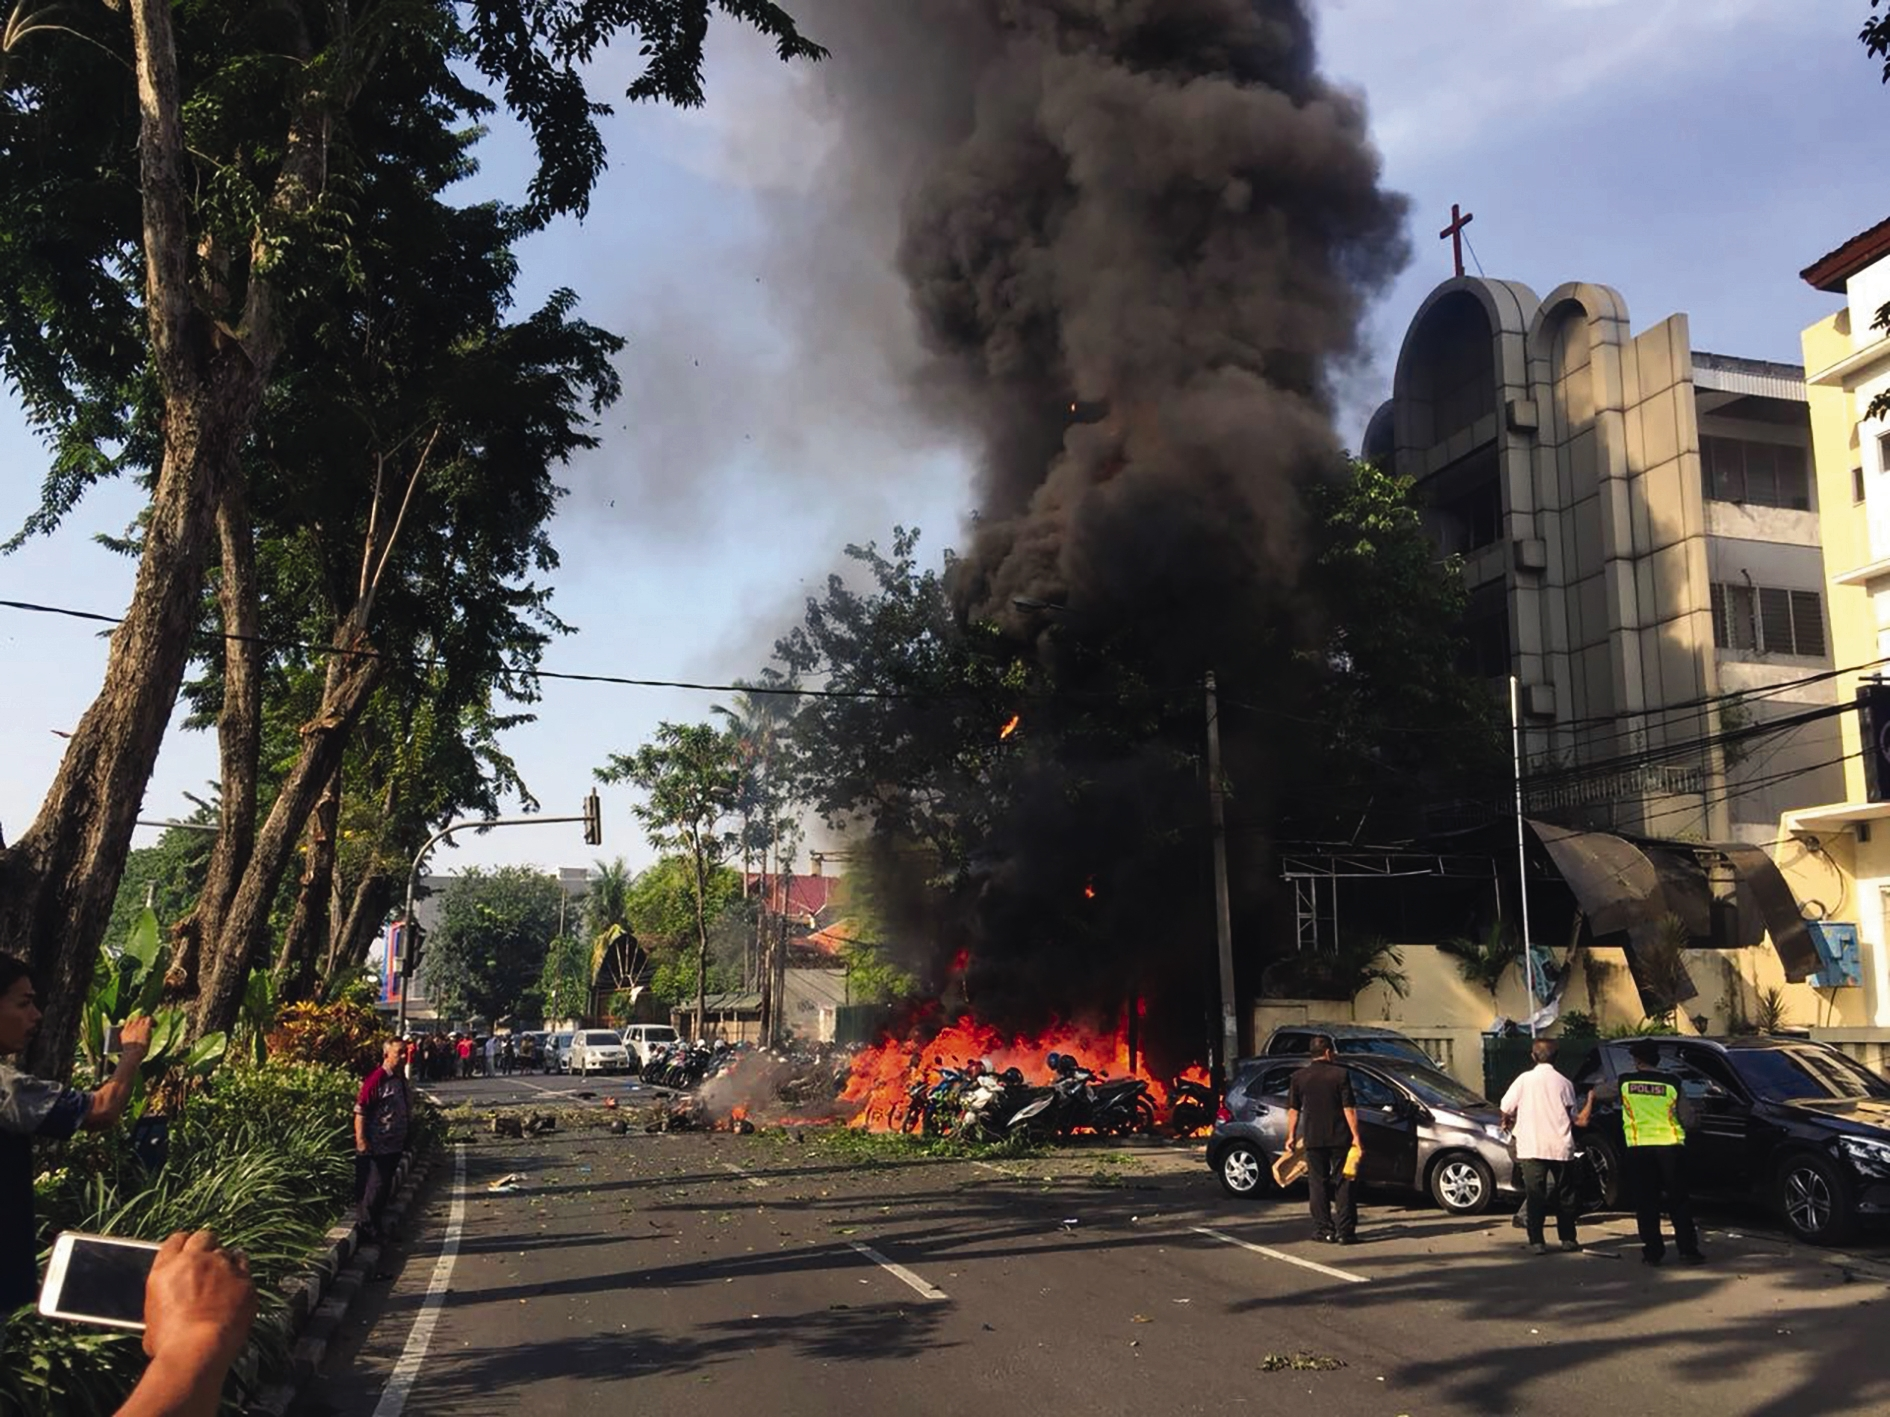 INDONESIA | APR. 30, 2021 — Suicide Bombers Attack Church, Injure 19